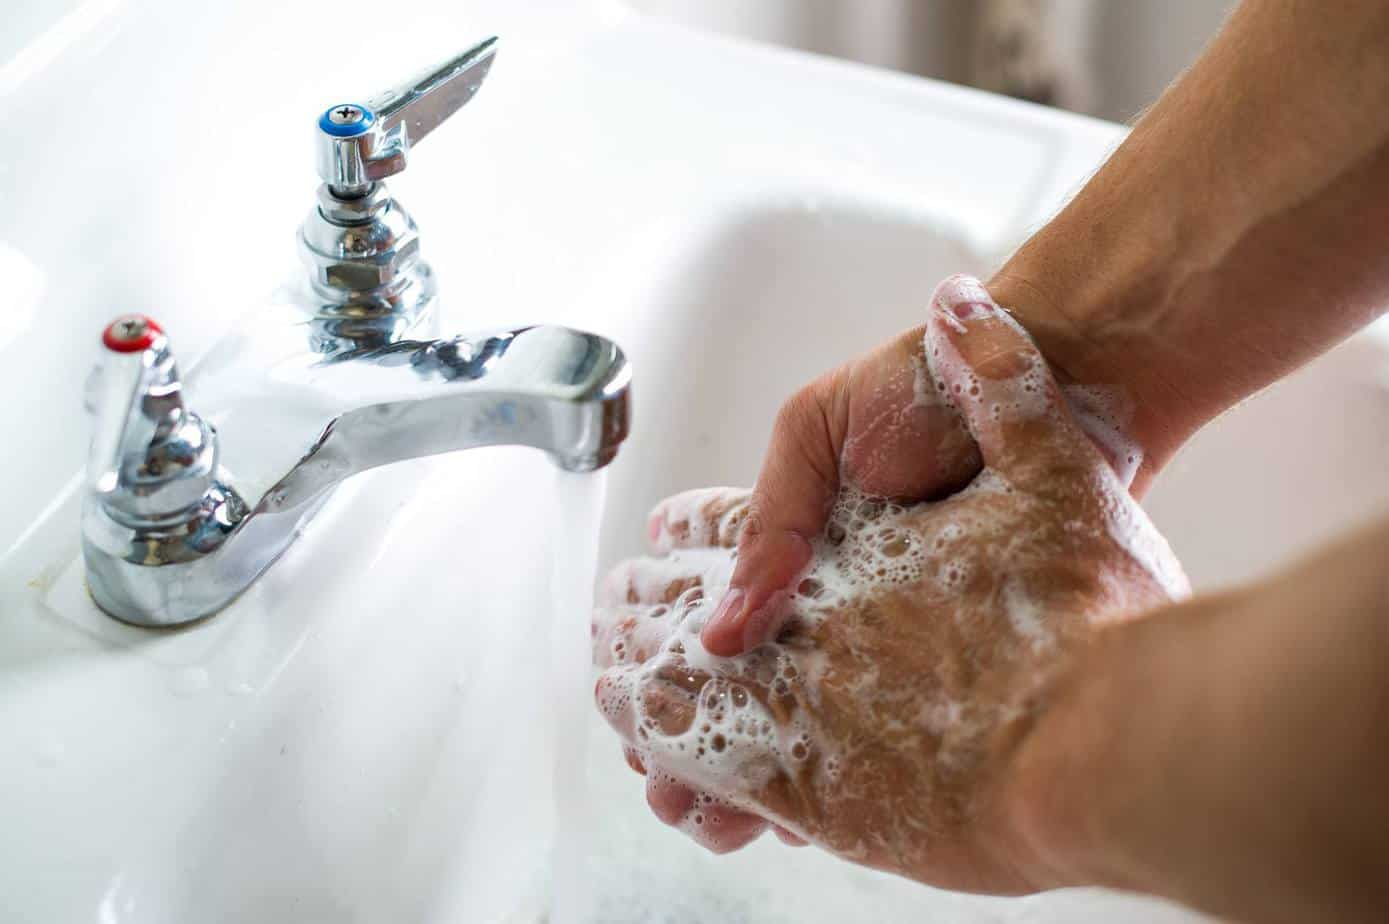 5 Reasons Hand Sanitizers Are Not As Effective as You Think